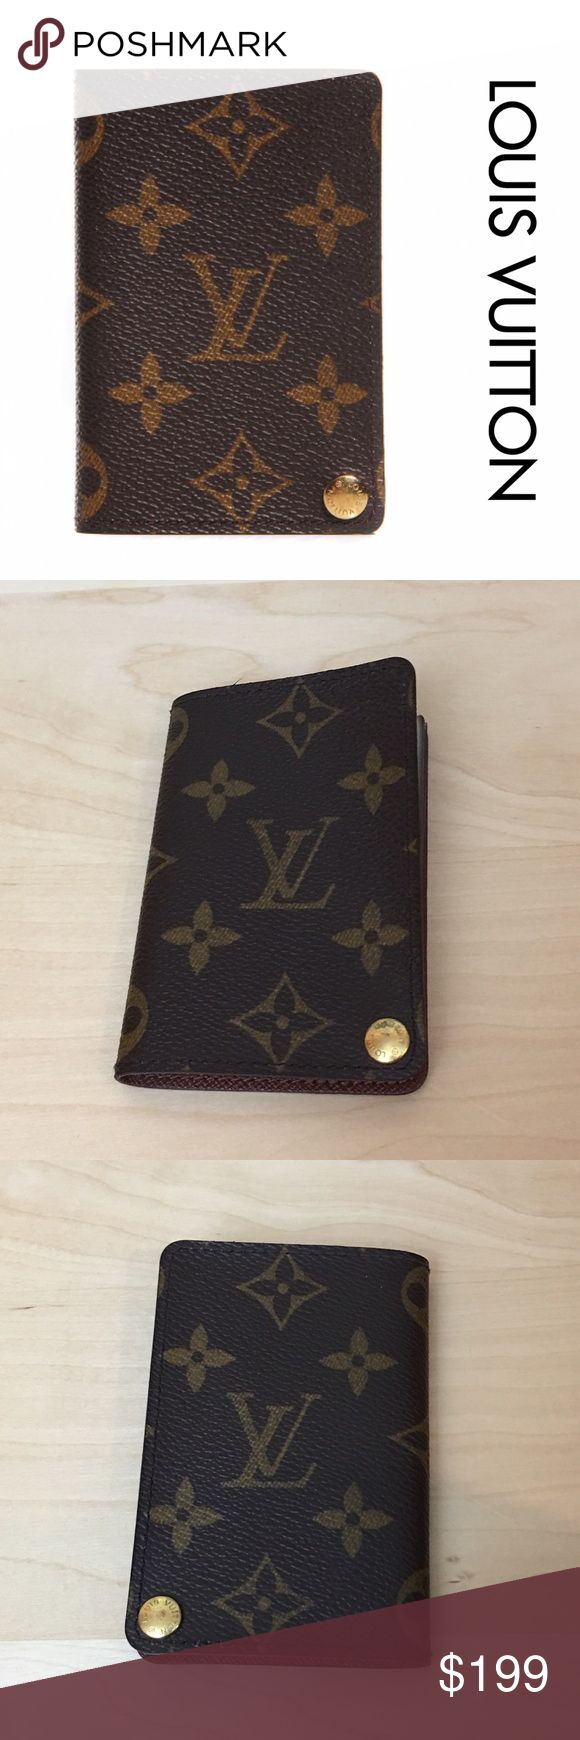 "Authentic Louis Vuitton Card Wallet 100% Authentic Louis Vuitton card wallet. Has 7 plastic pouches inside each one carries 2 cards. Come with a brand new set of plastic pouches to replace the old ones. Measures 3"" x 4"". Louis Vuitton Bags Wallets"